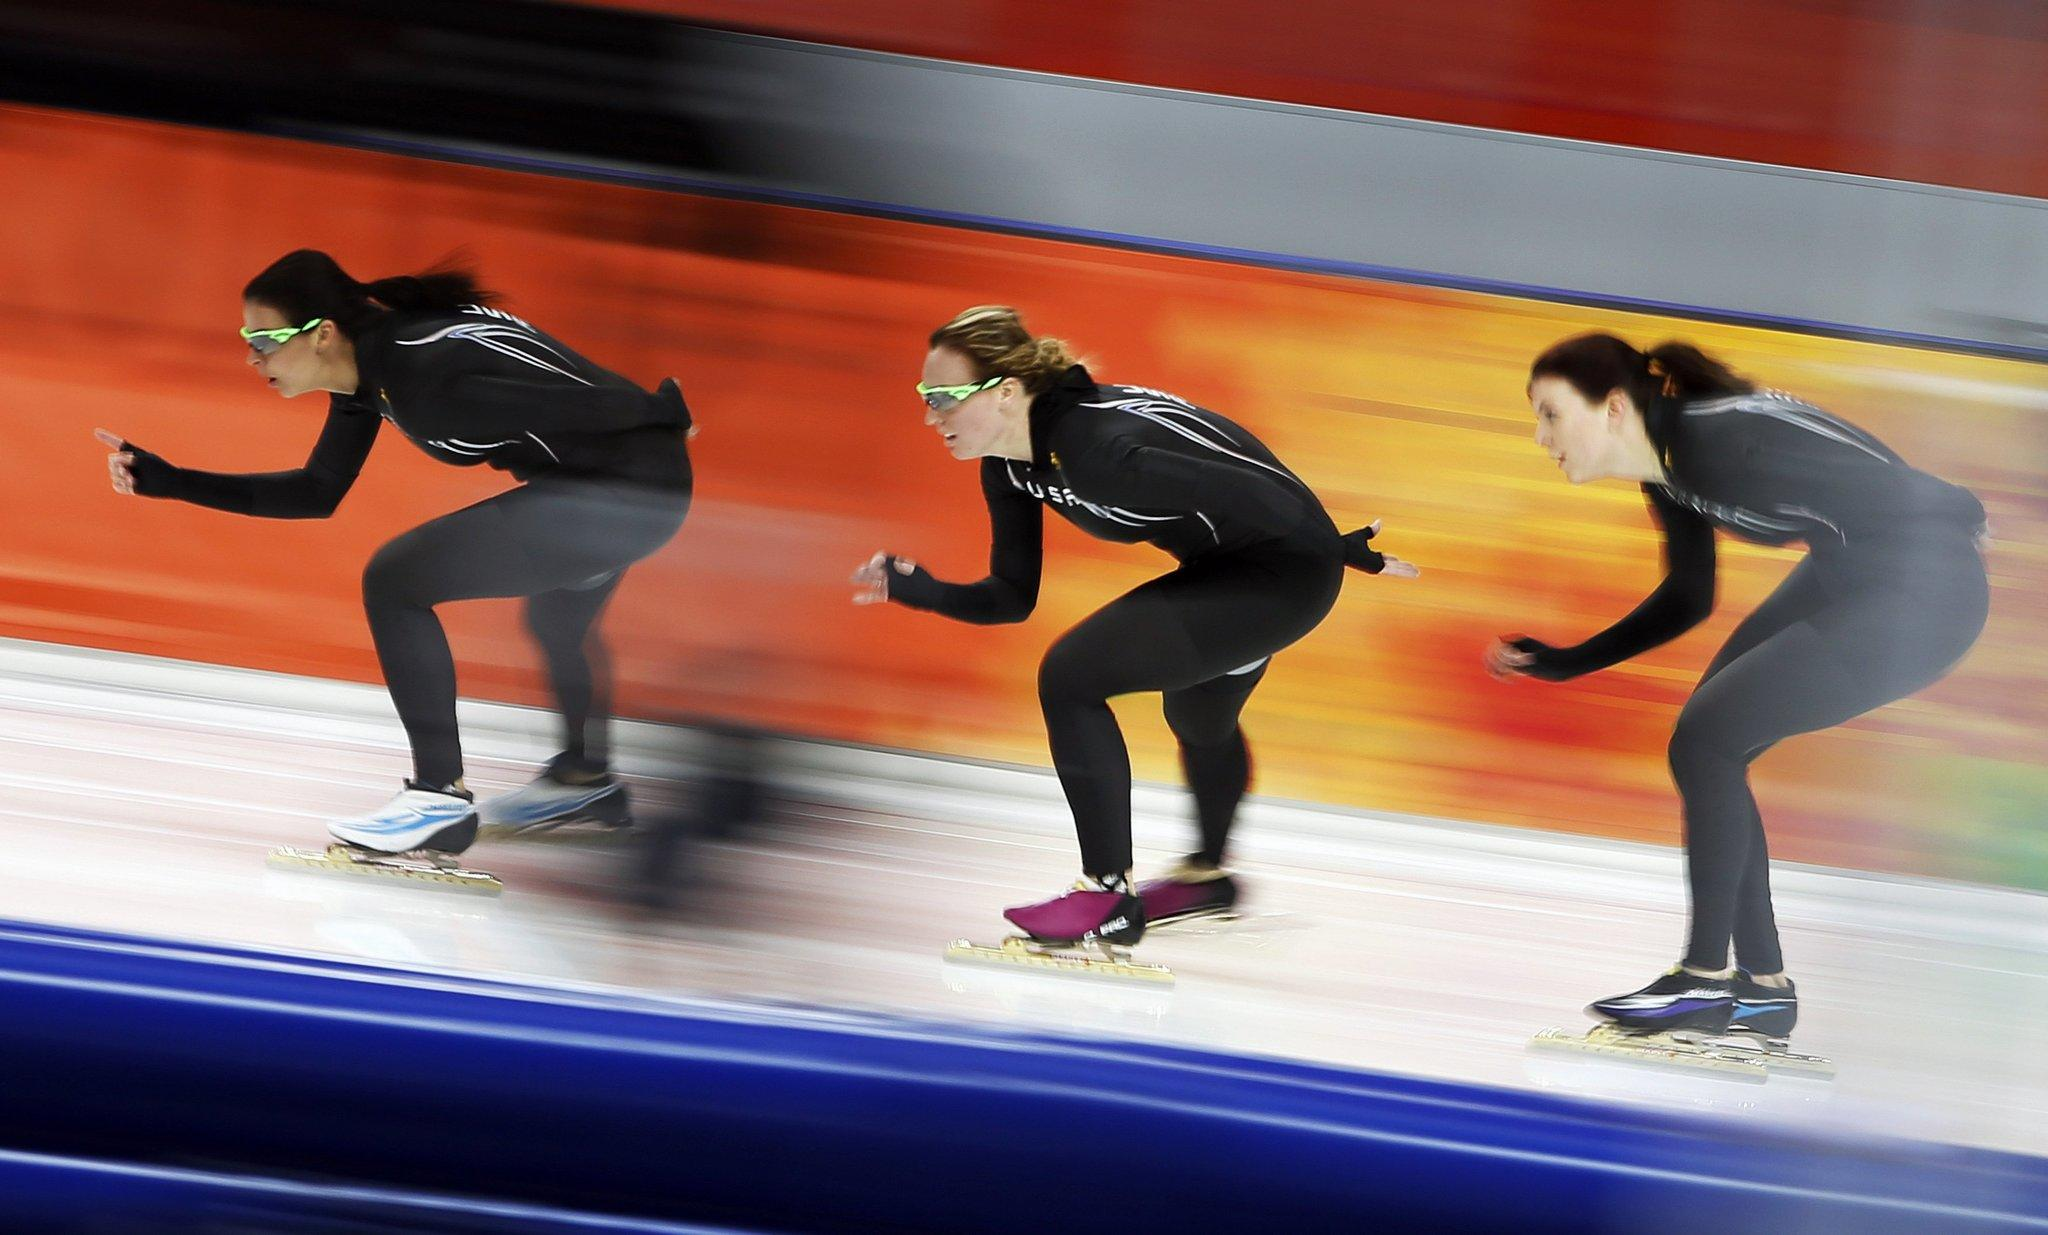 Members of the U.S. speedskating team practice at the Adler Arena ahead of the 2014 Sochi Winter Olympics, February 7, 2014.